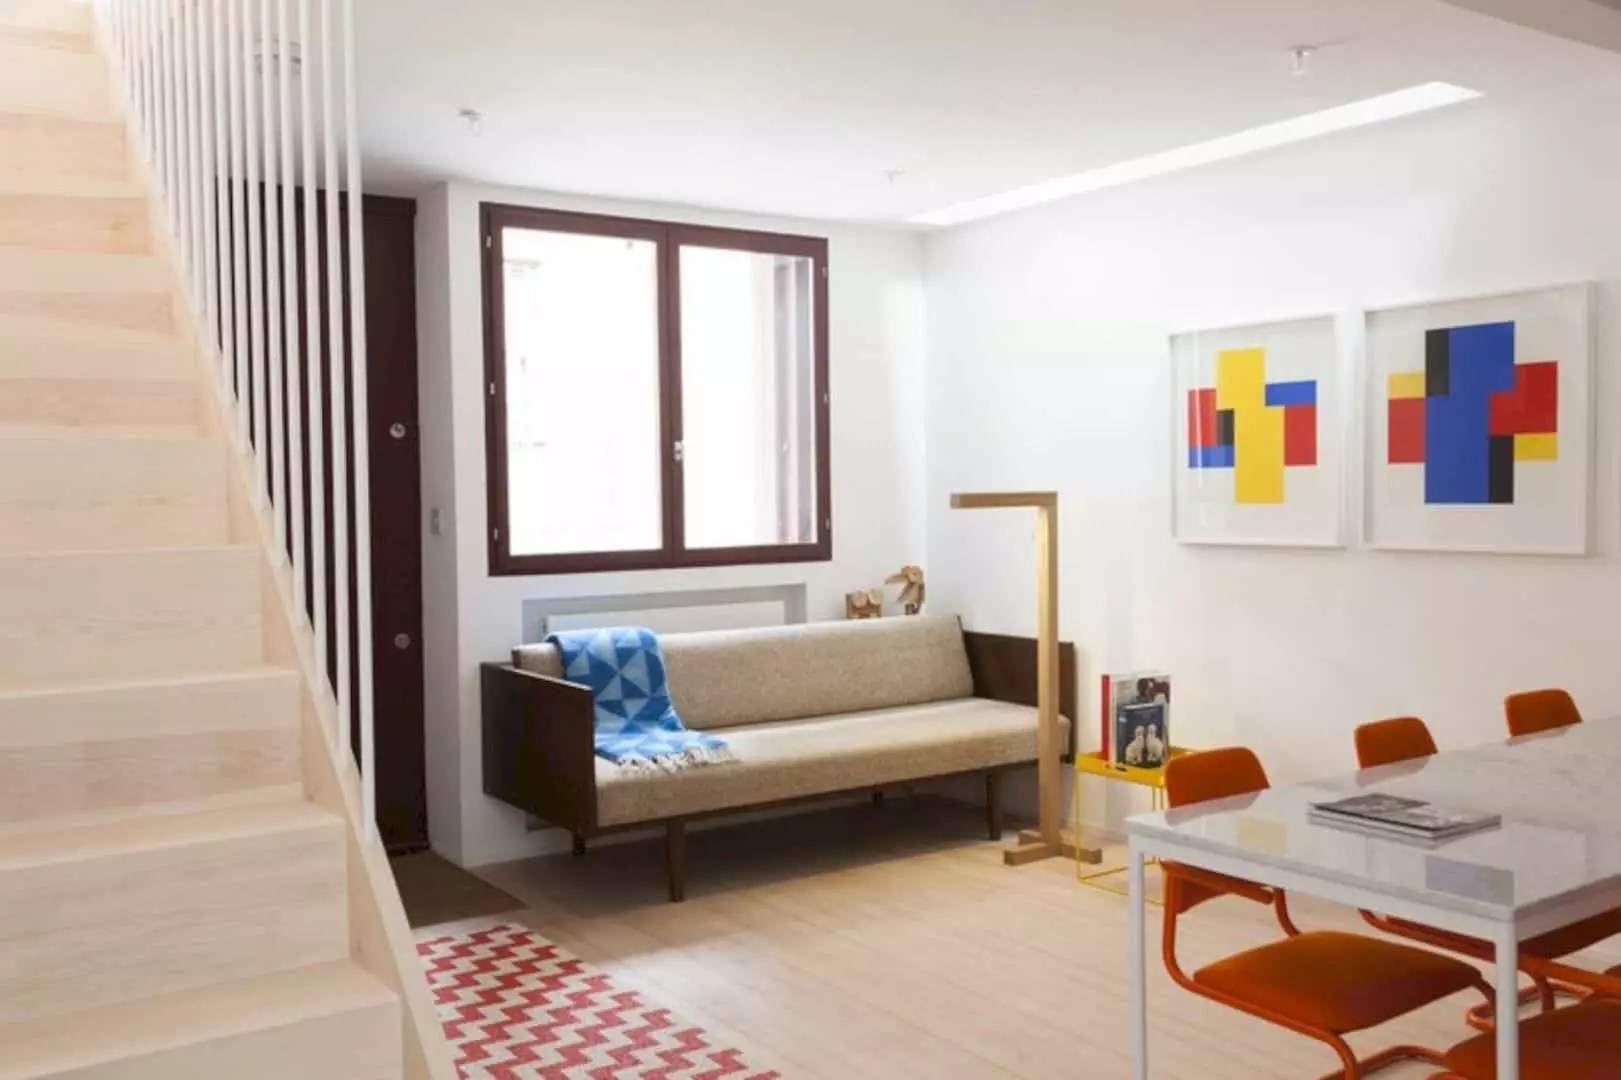 London Home Airbnb Rental Studiomama: A House with Minimalist Interior and New Layout